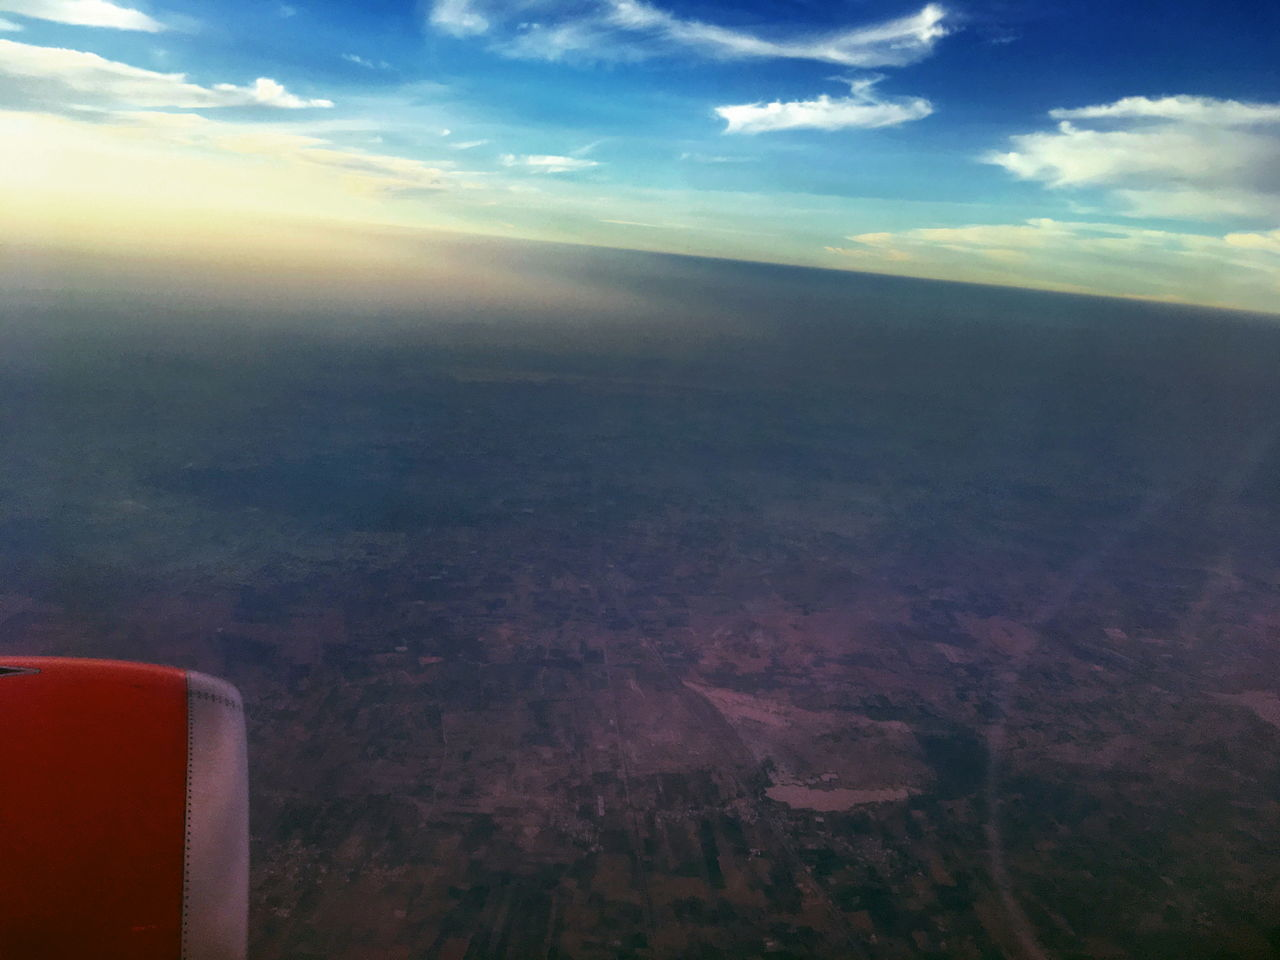 scenics, sky, landscape, beauty in nature, cloud - sky, aerial view, nature, airplane, outdoors, tranquility, air vehicle, flying, tranquil scene, no people, aircraft wing, day, vehicle part, patchwork landscape, airplane wing